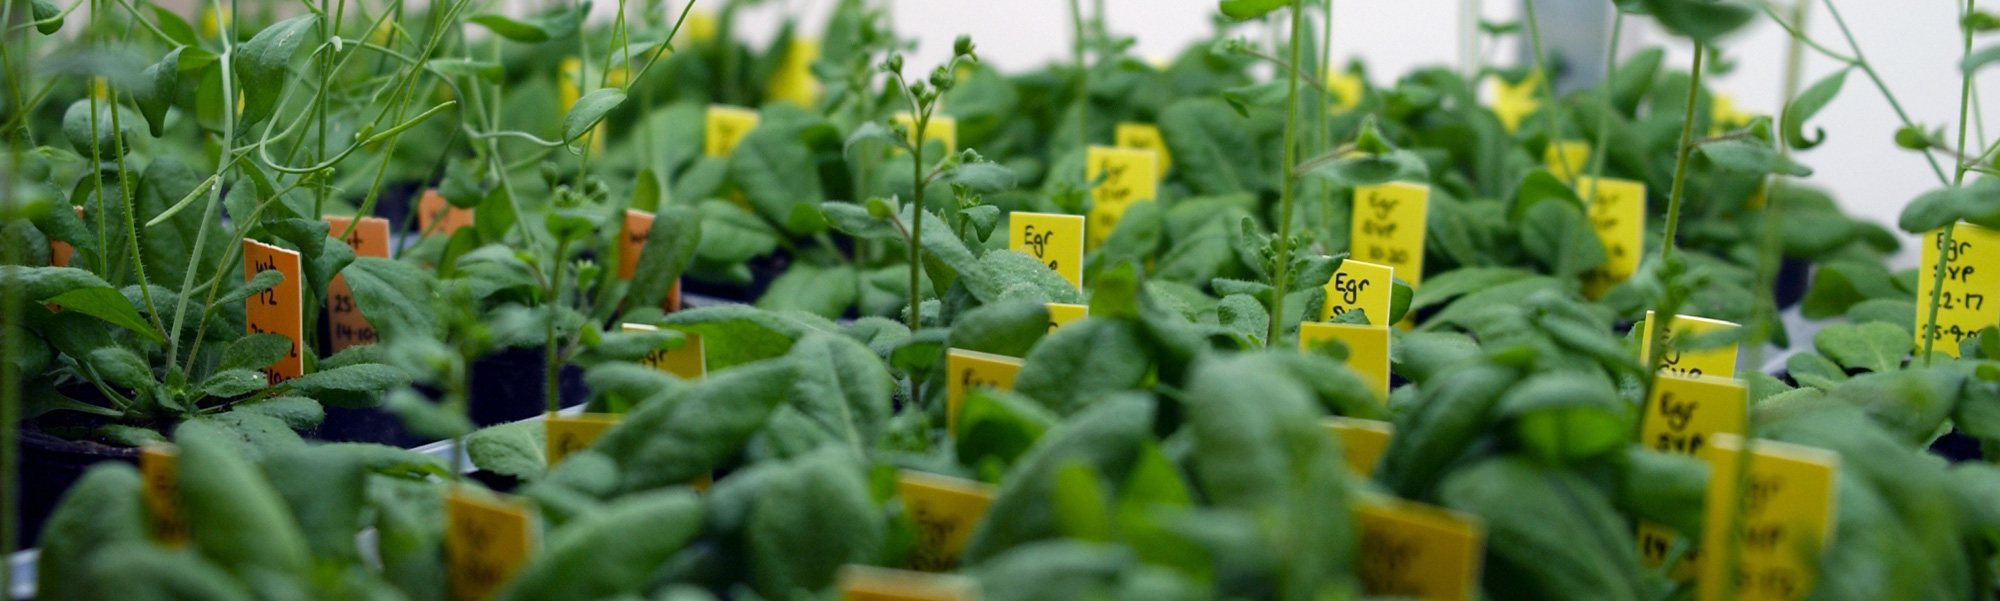 More food, cleaner food—gene technology and plants - Curious